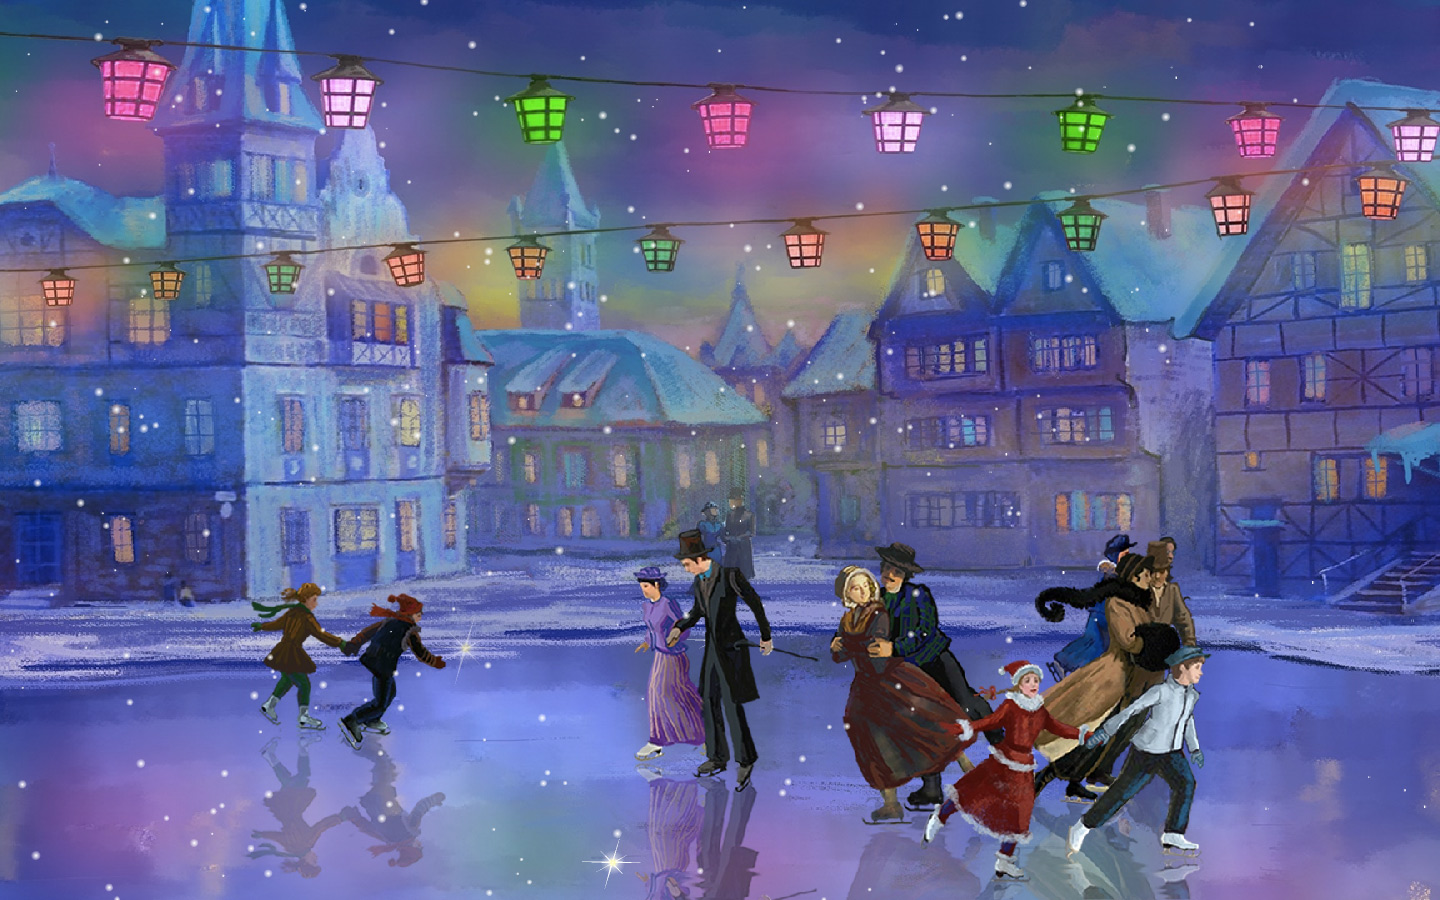 Snow Village 3d Live Wallpaper And Screensaver Love Rink Screensaver Amp Animated Desktop Wallpaper Join